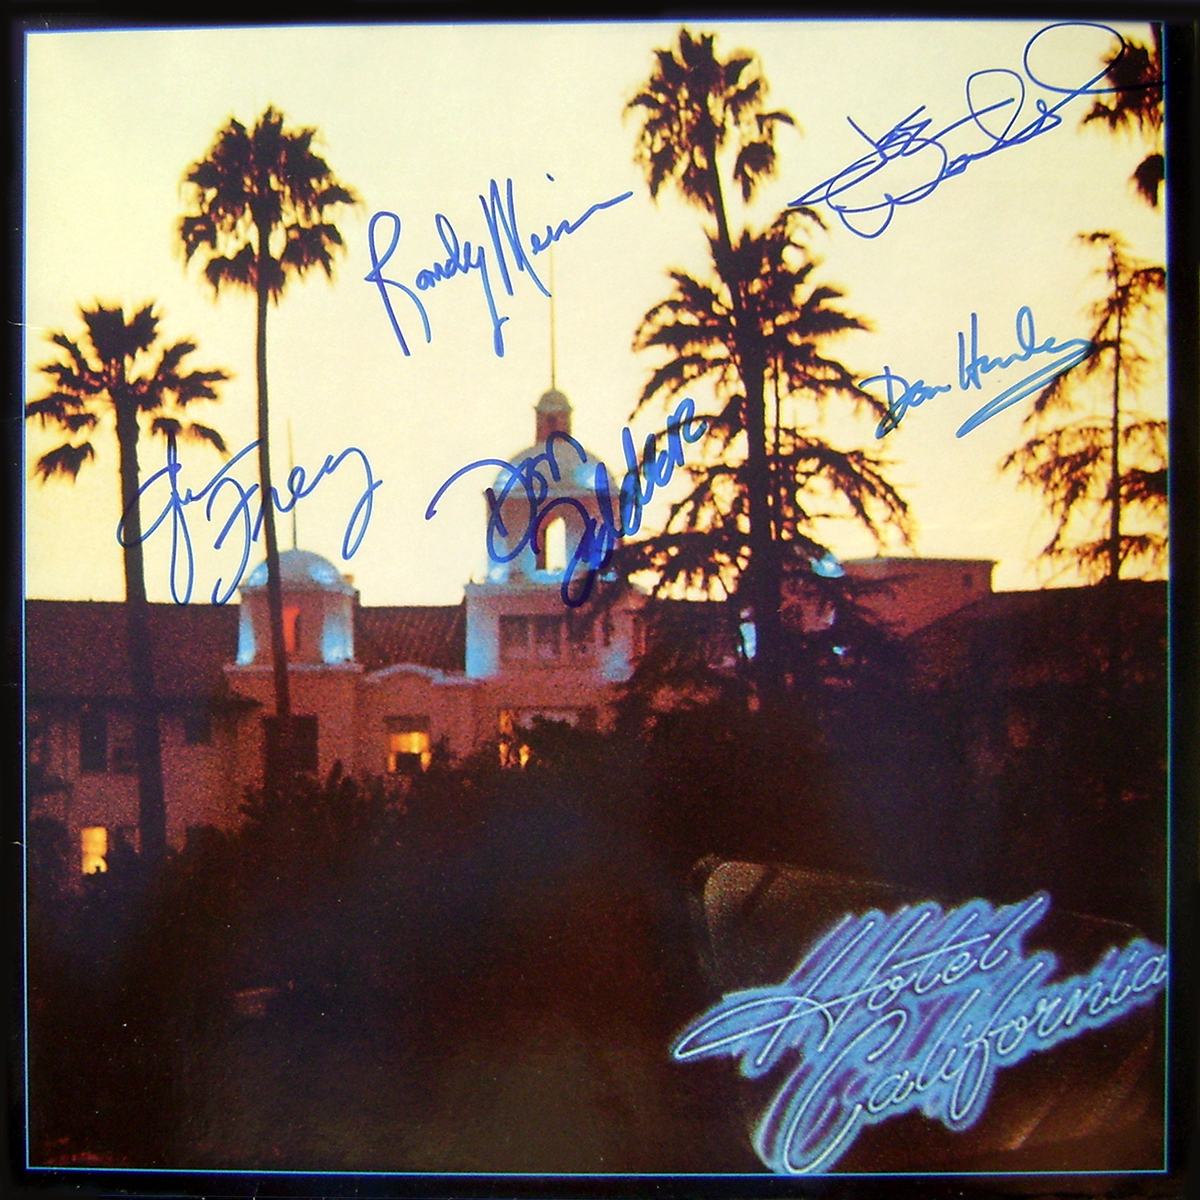 Eagles LP - Hotel California #1